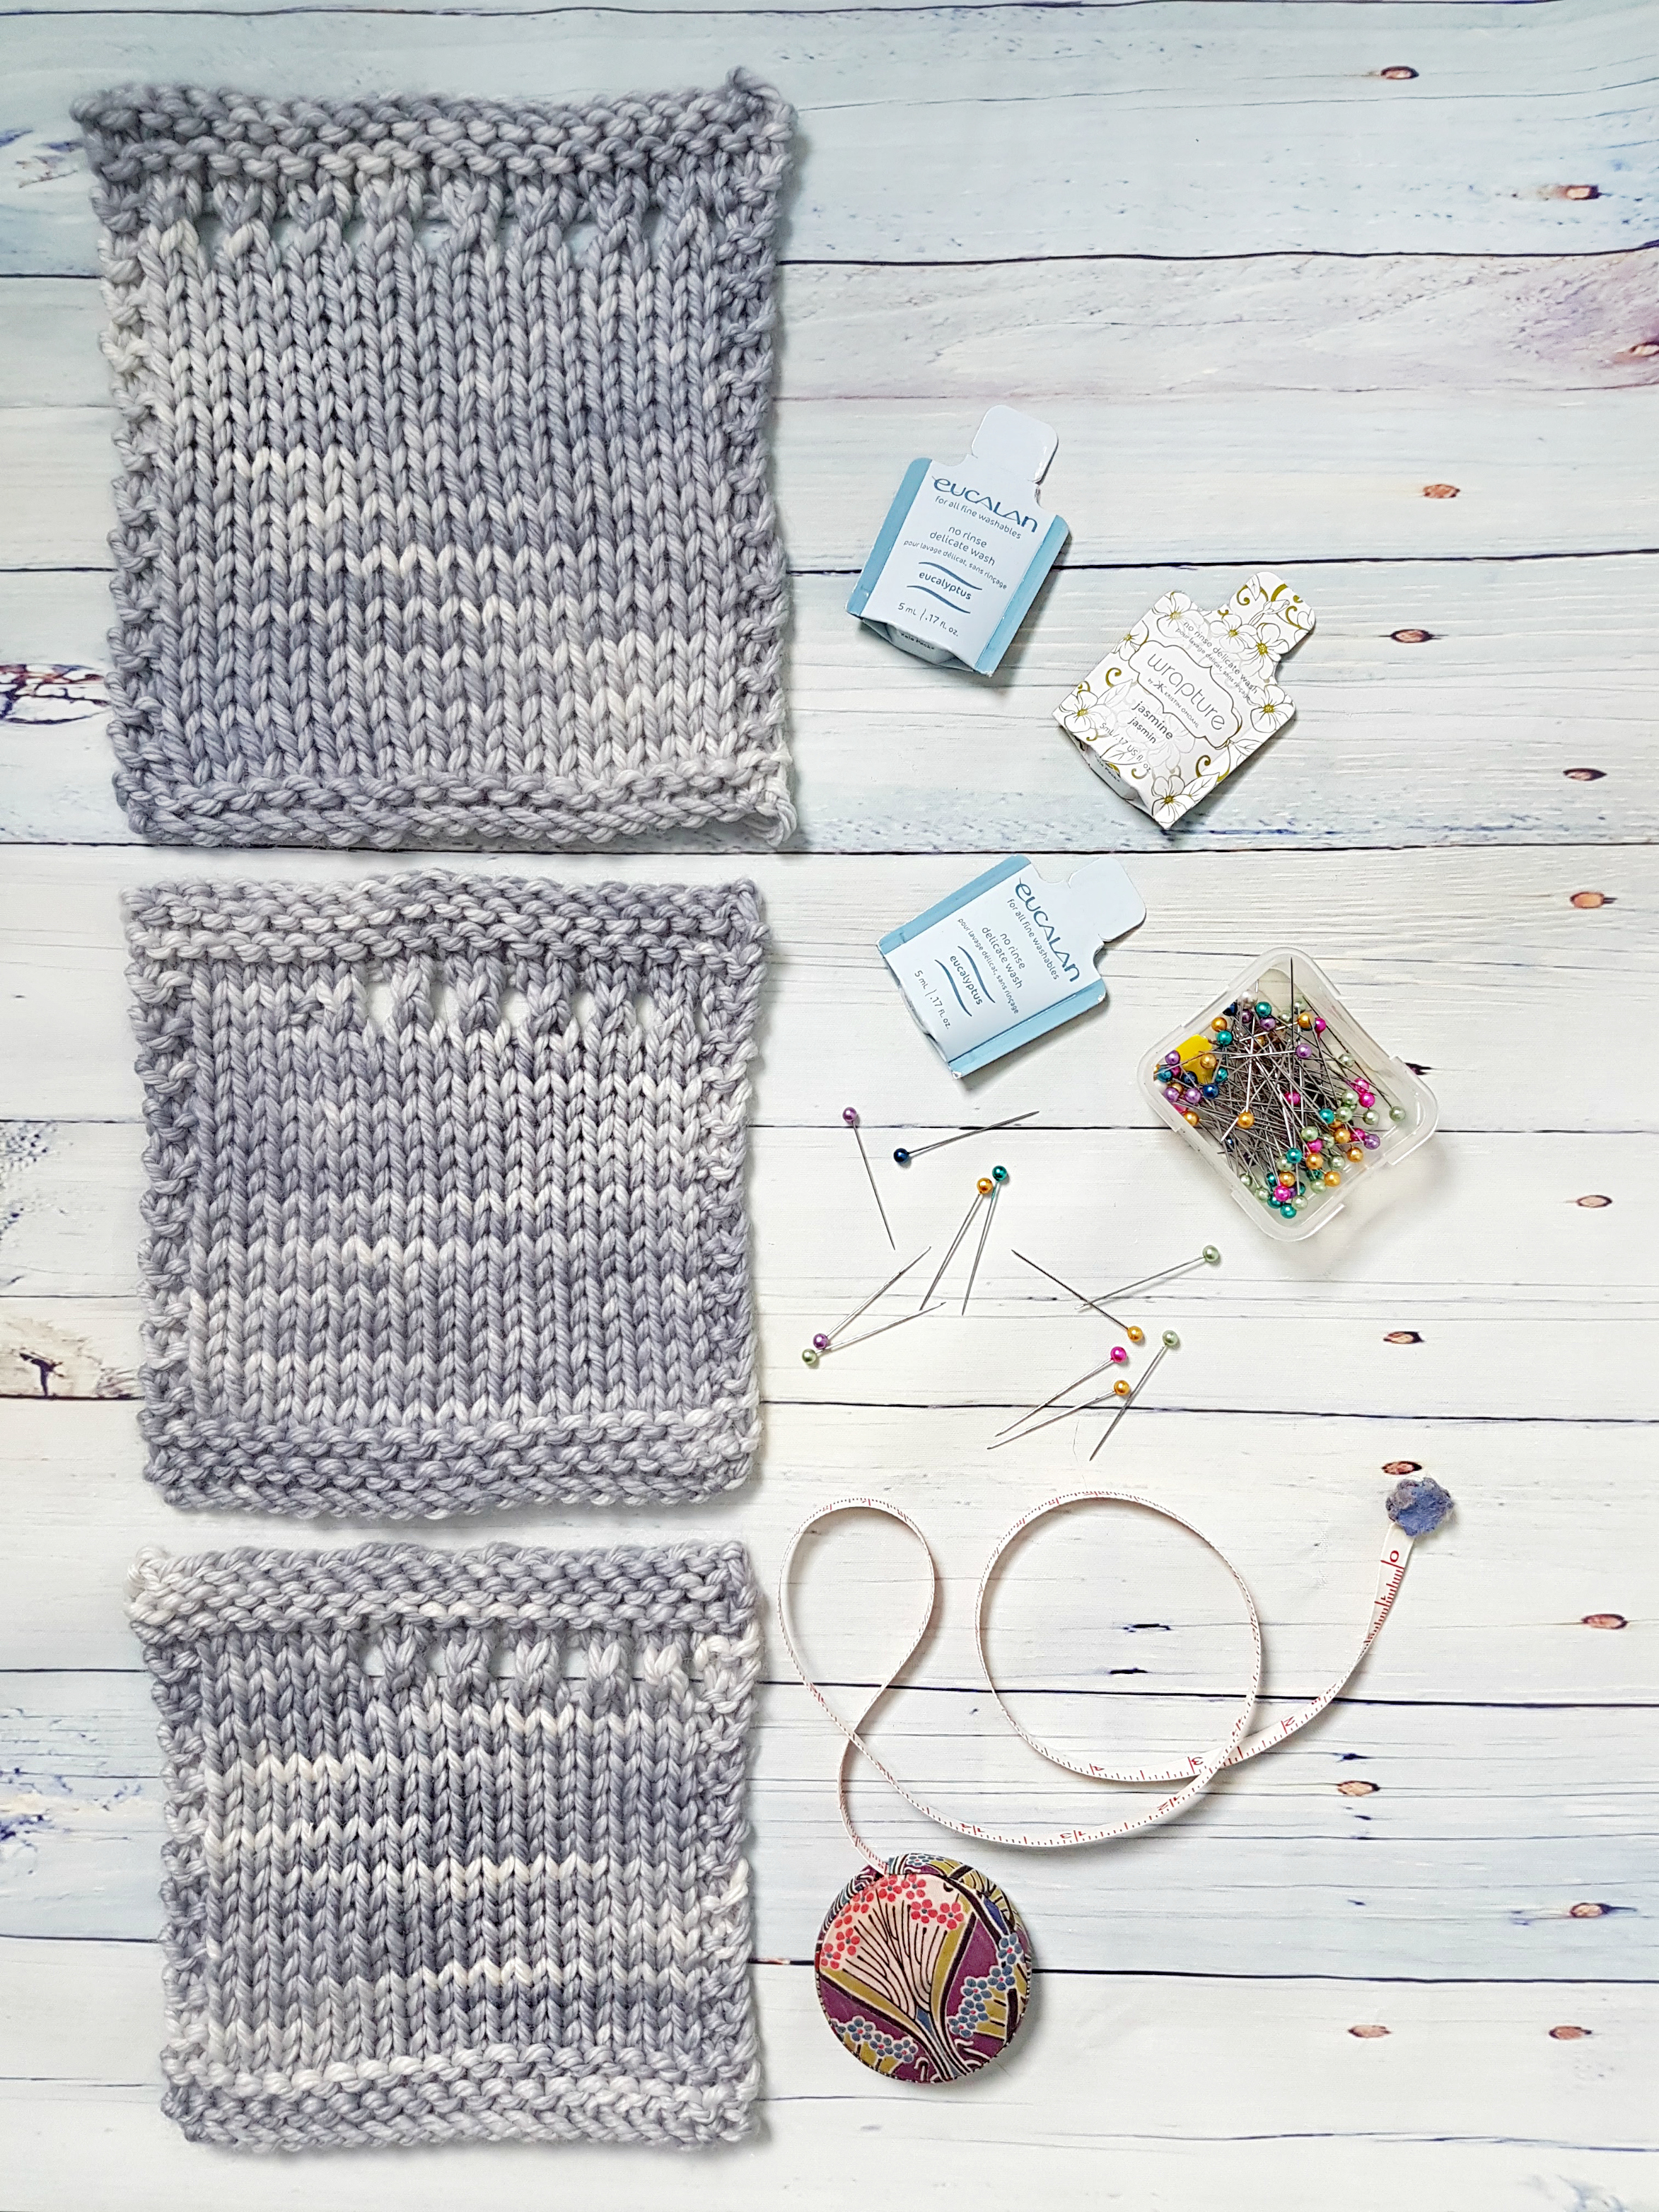 Gettign Gauge: Swatching Tips and Tricks | Delicious Yarns